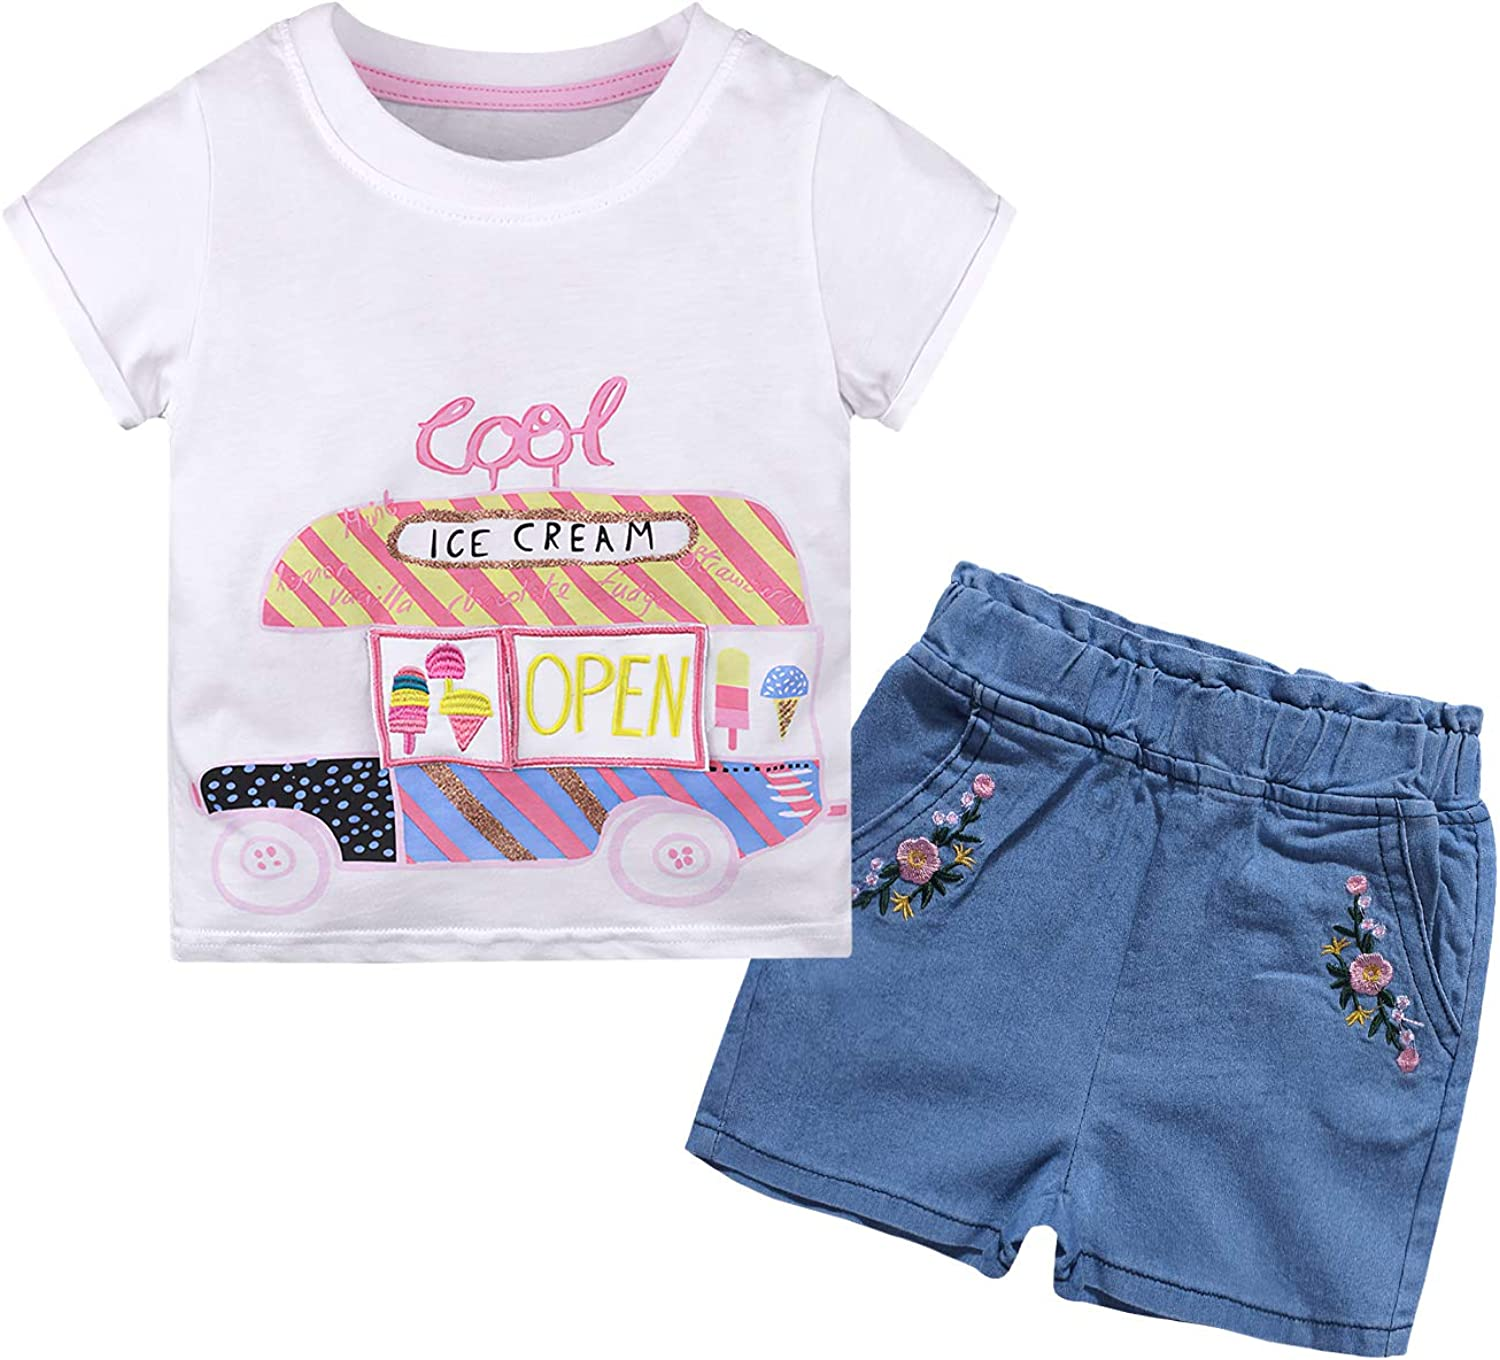 Nwada Kids Girl Tshirt and Shorts Set Toddler Clothes for Spring and Summer Cartoon Printed Tops and Denim Pants Age 18 Month 6 Years